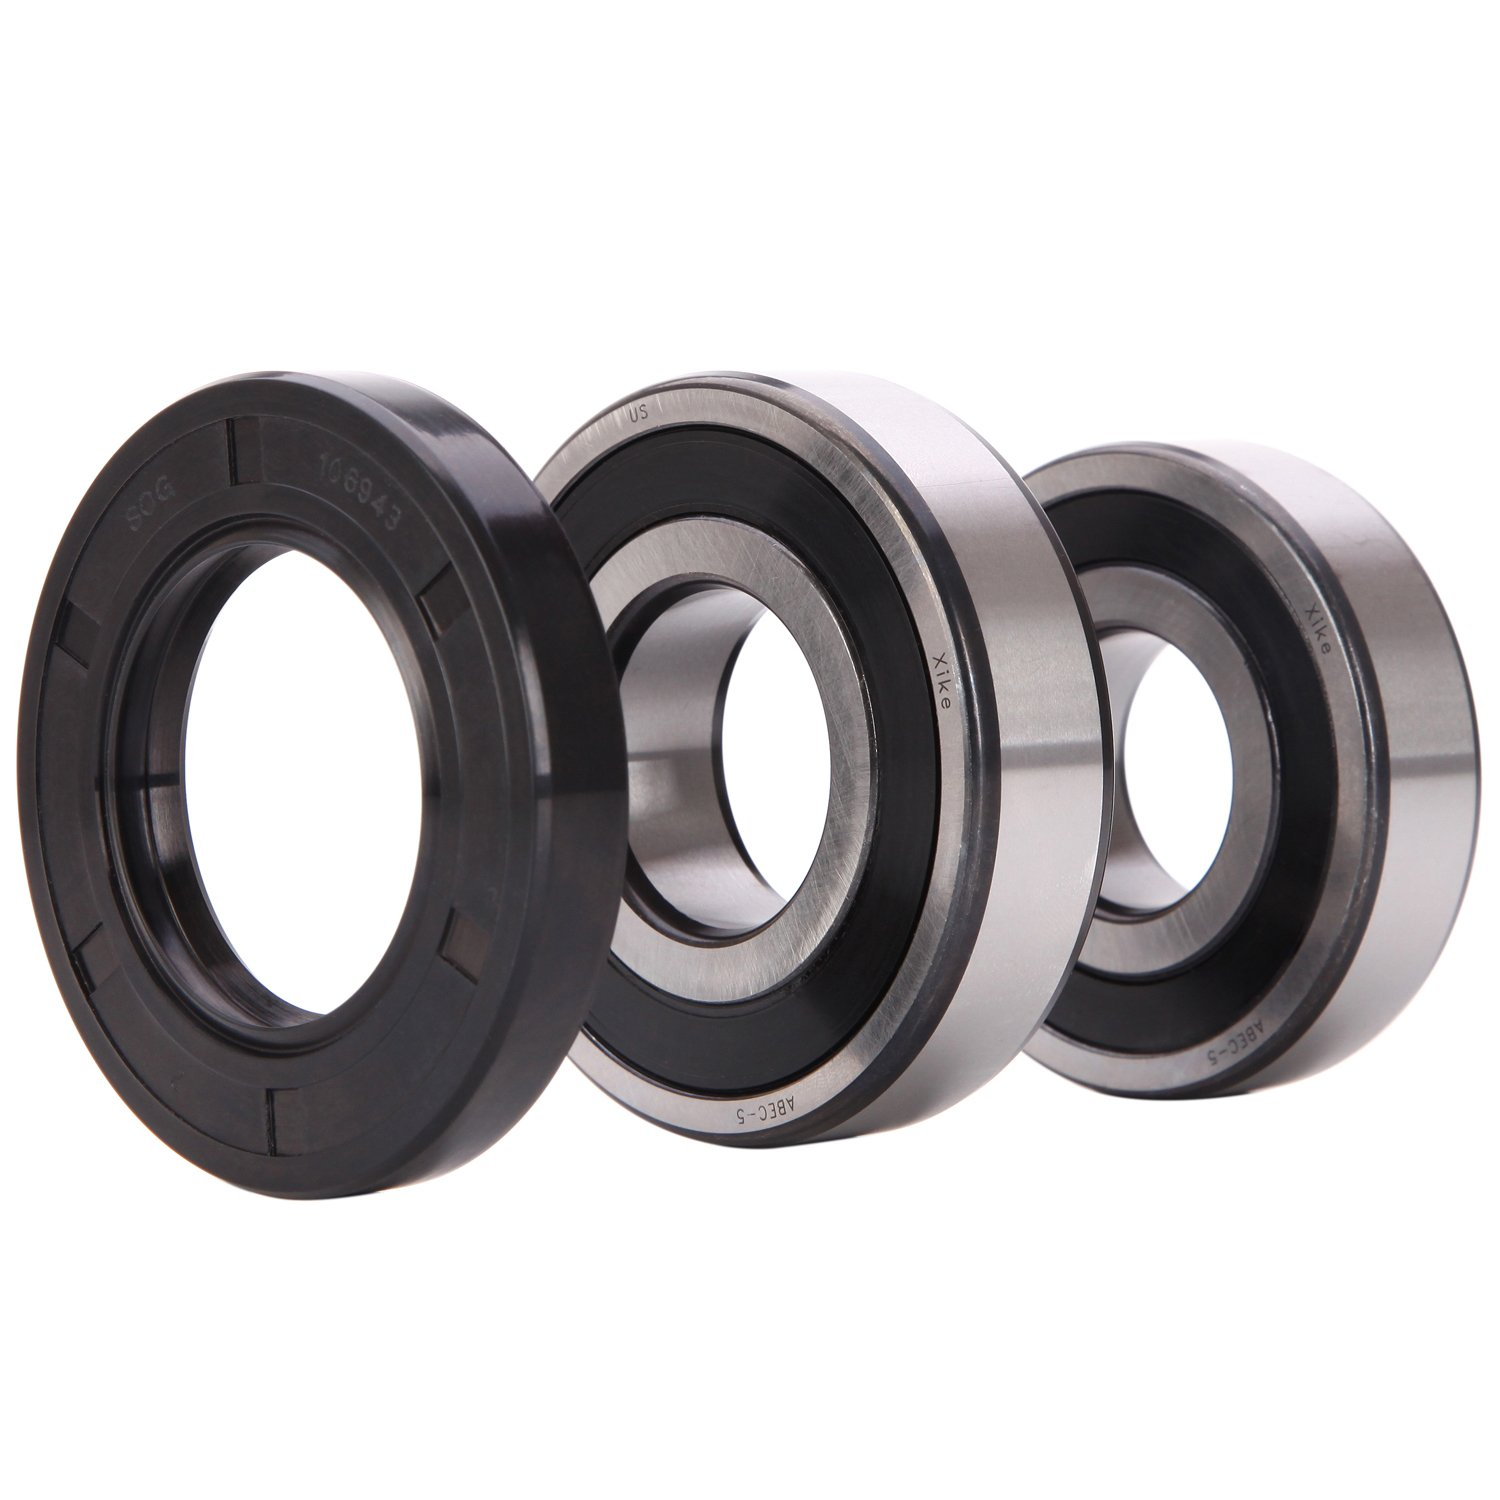 XiKe 134509510 Front Load Washer Tub Bearing & Seal Kit, Rotate Quiet and Durable Replacement for Frigidaire, Kenmore, Crosley Washer, AP3892114, 1191144, 134509500 Etc. by XiKe (Image #2)